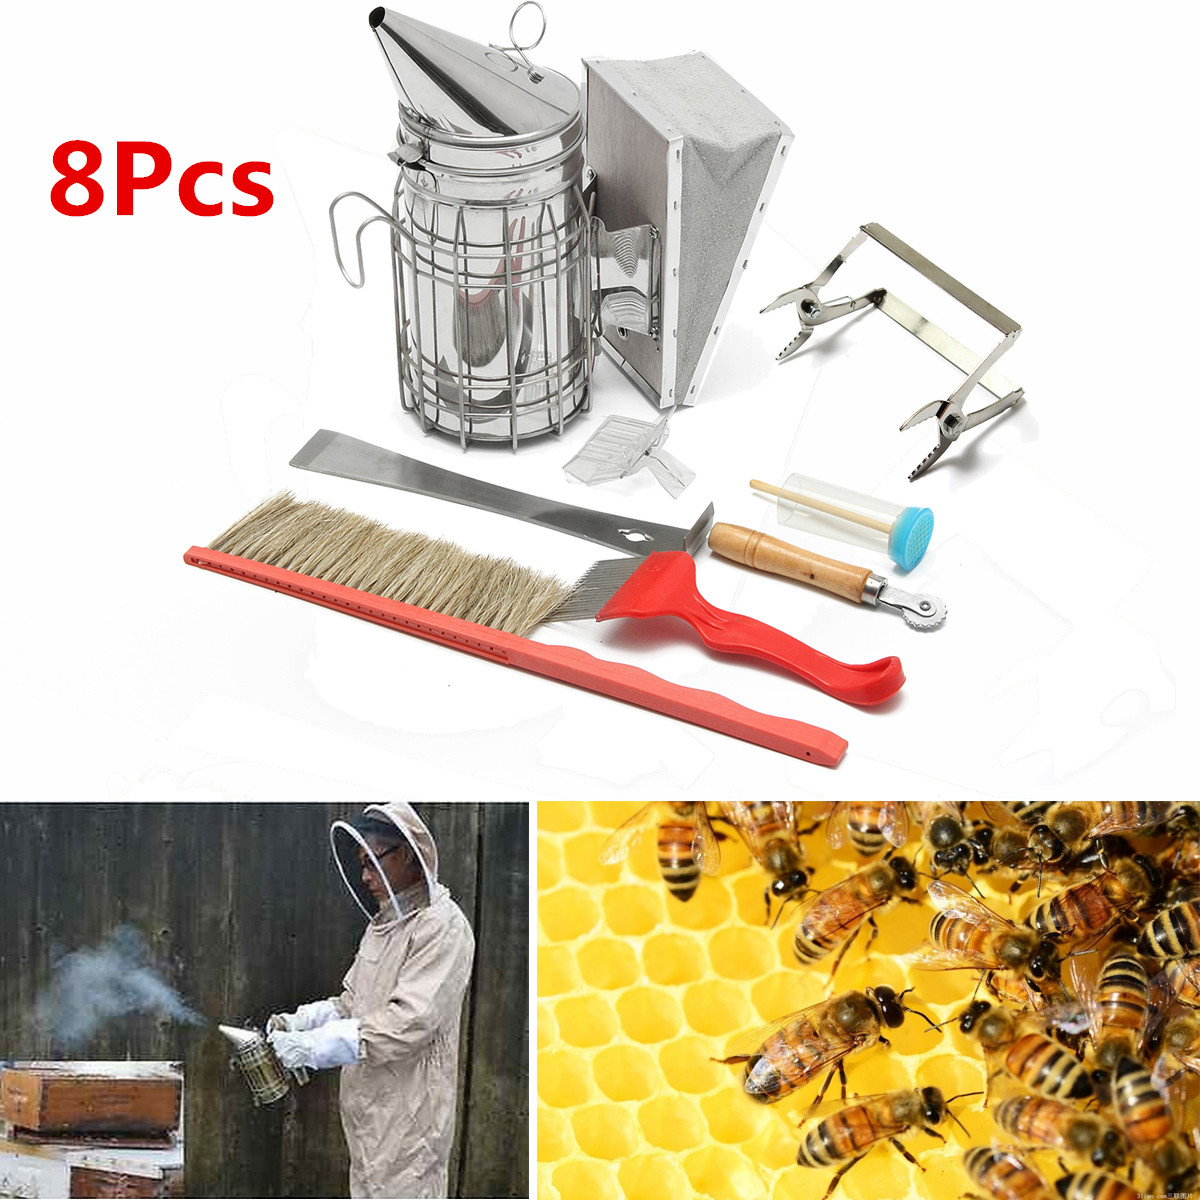 Beekeeping Tools Kit Bee Hive Smoker Scraper Beekeeping Equipment Beehive